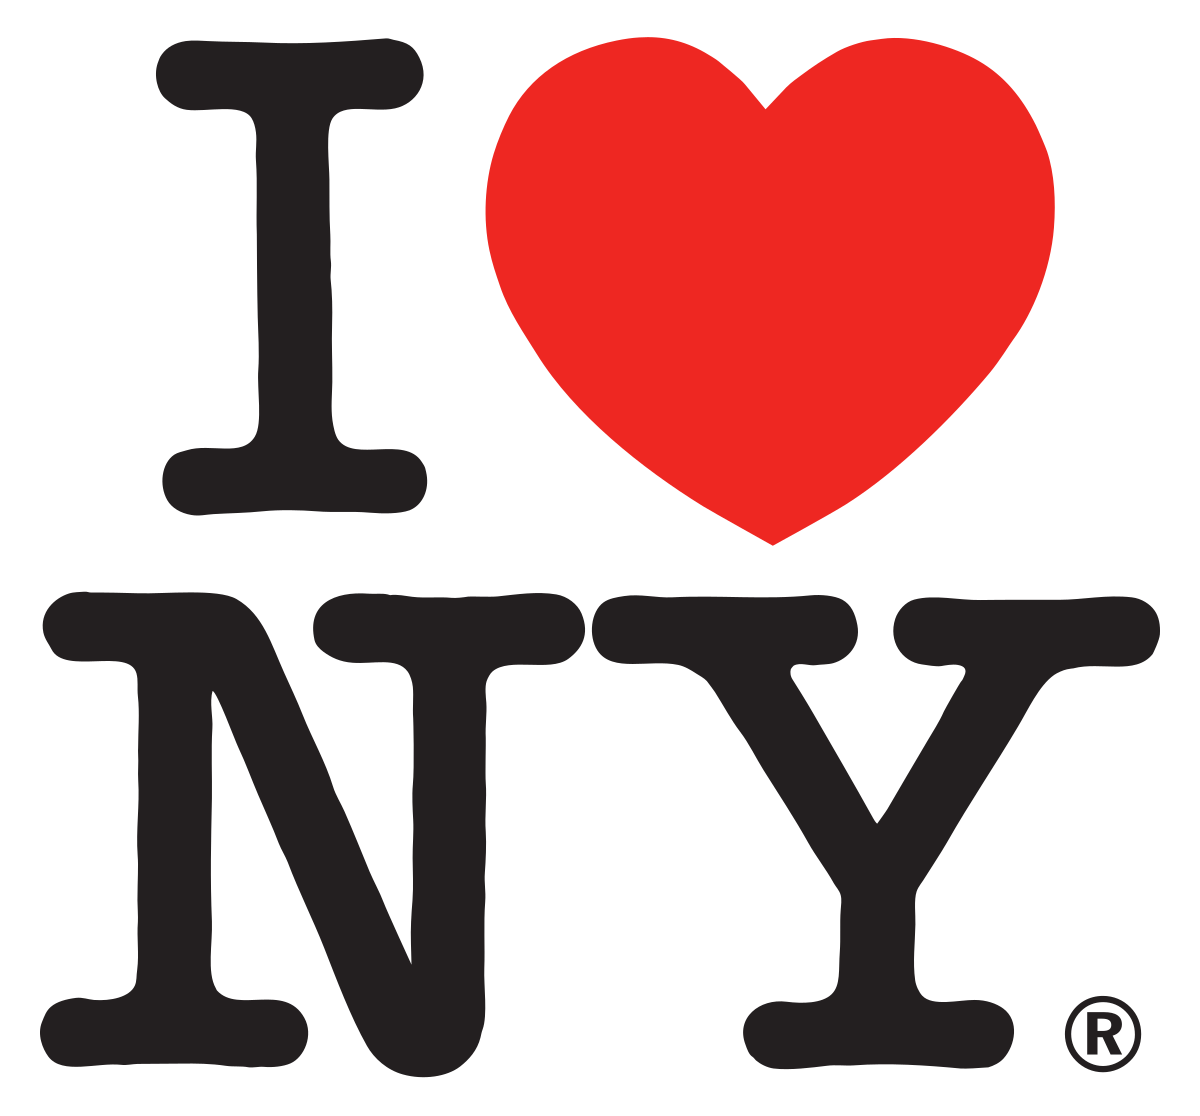 New york wikipedia. I love ny png clipart transparent